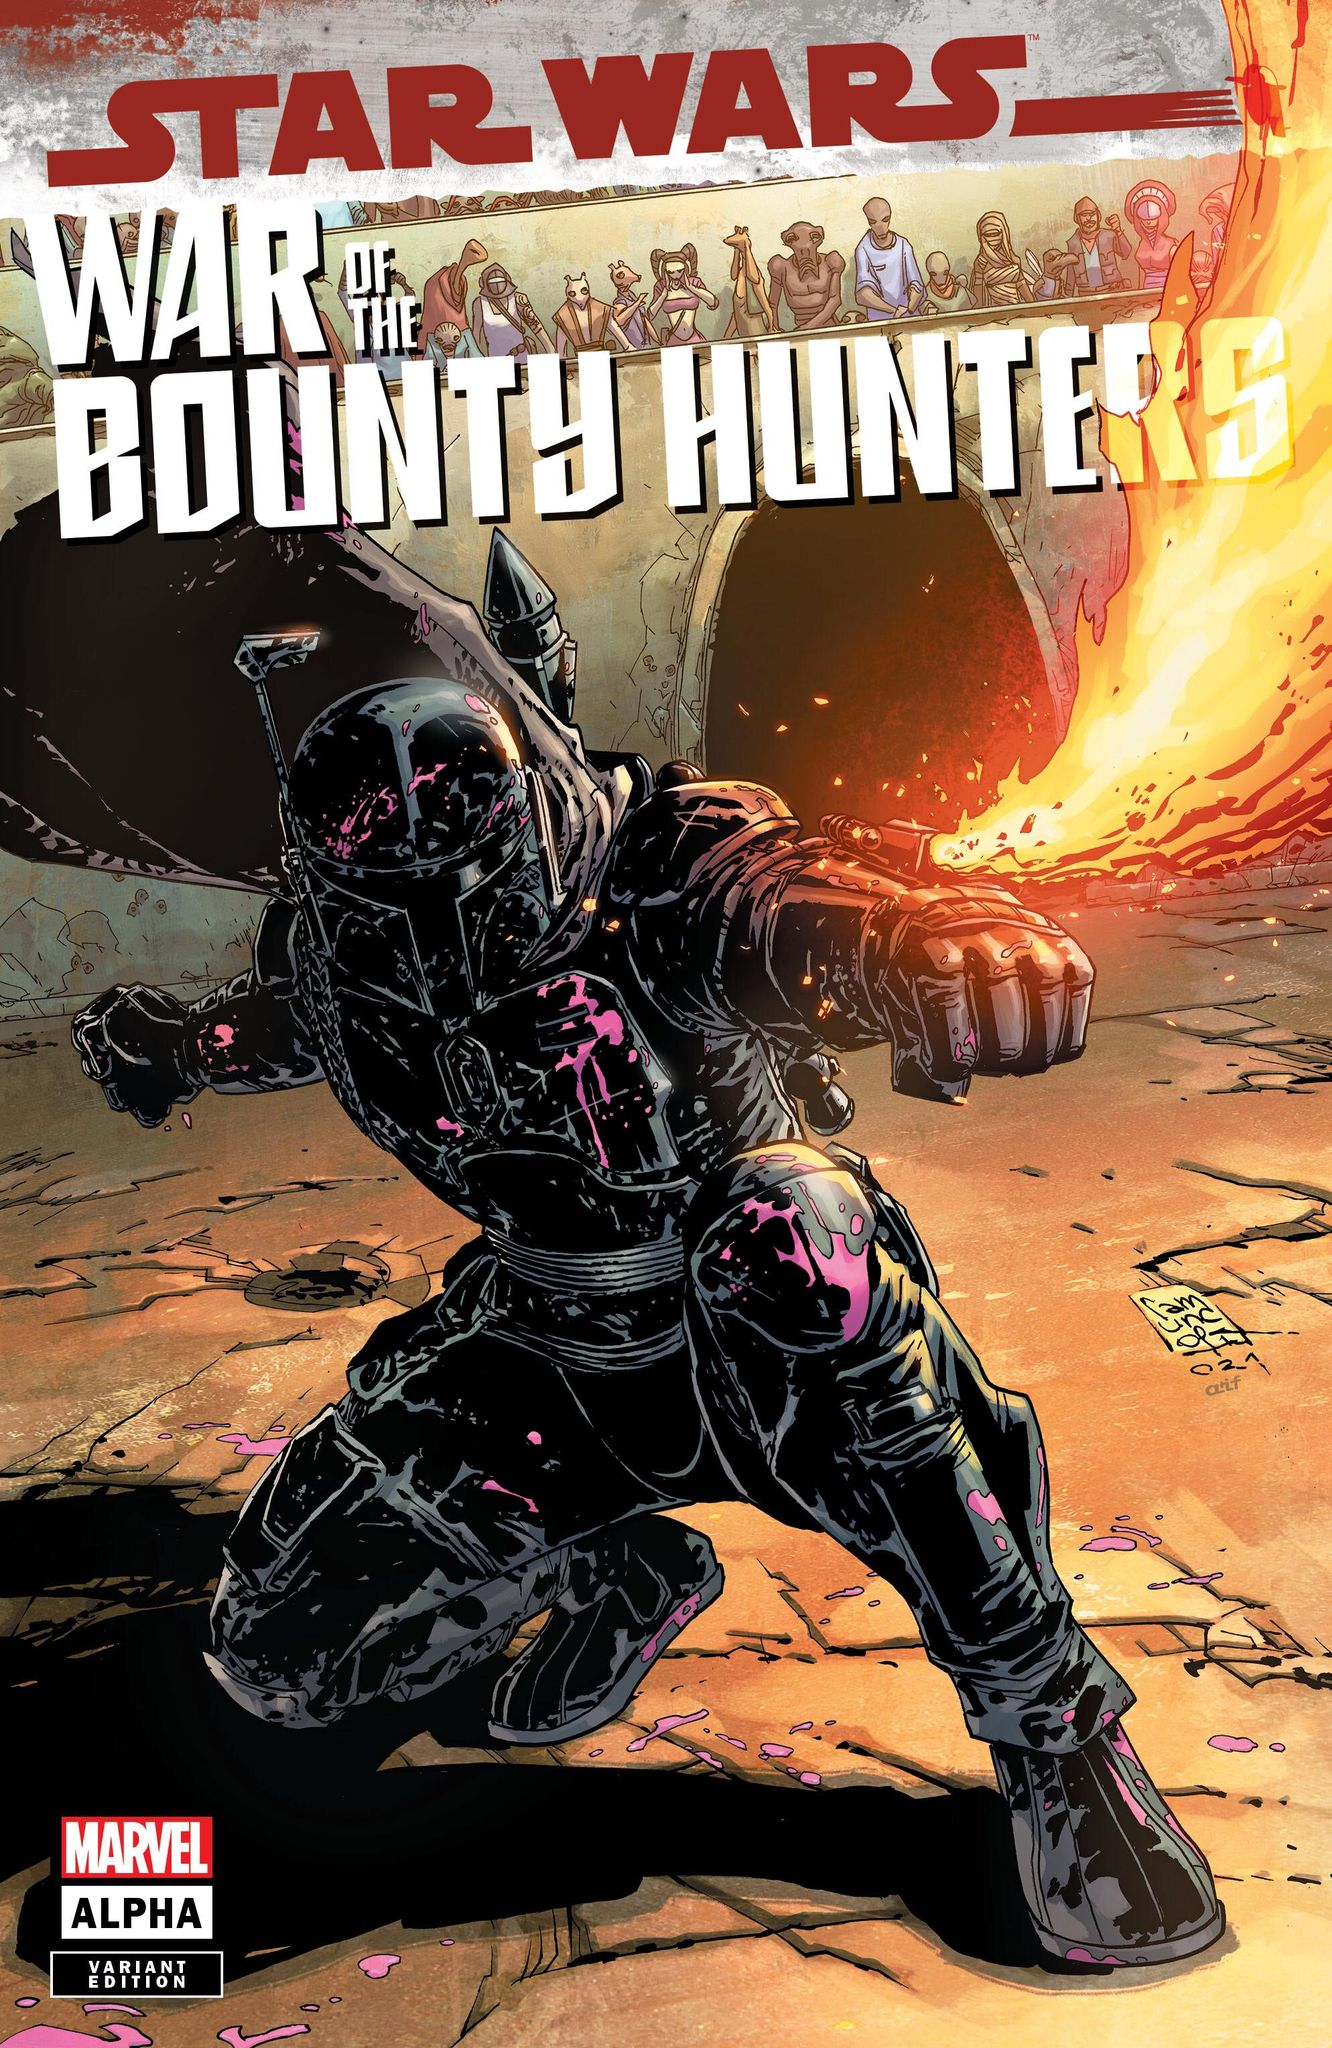 Star Wars: War of the Bounty Hunters Alpha - Comics Elite Variant